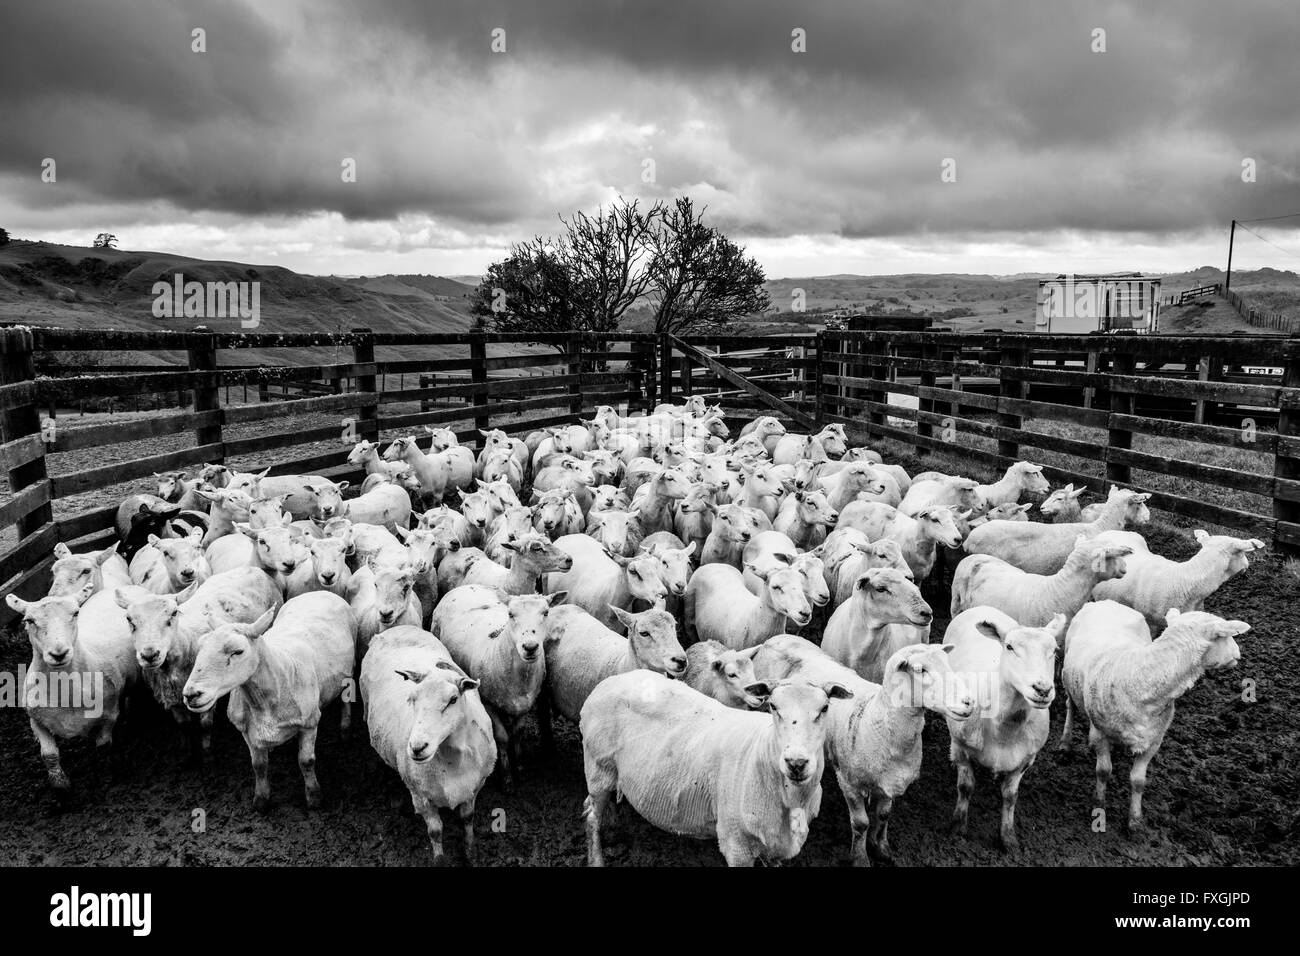 Sheep In A Pen Waiting To Be Sorted, Sheep Farm, Pukekohe, New Zealand - Stock Image